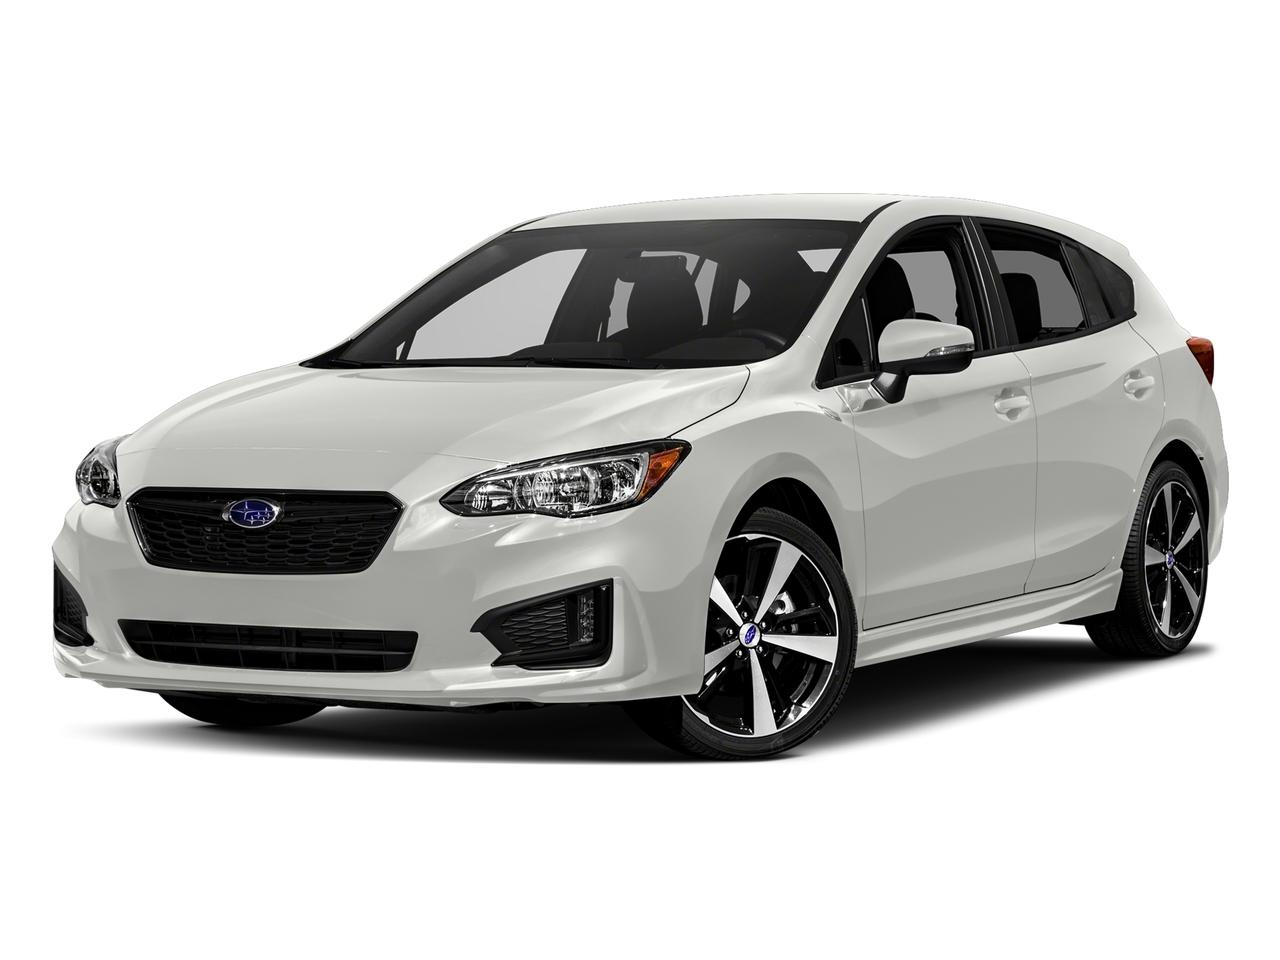 2017 Subaru Impreza Vehicle Photo in Rockville, MD 20852